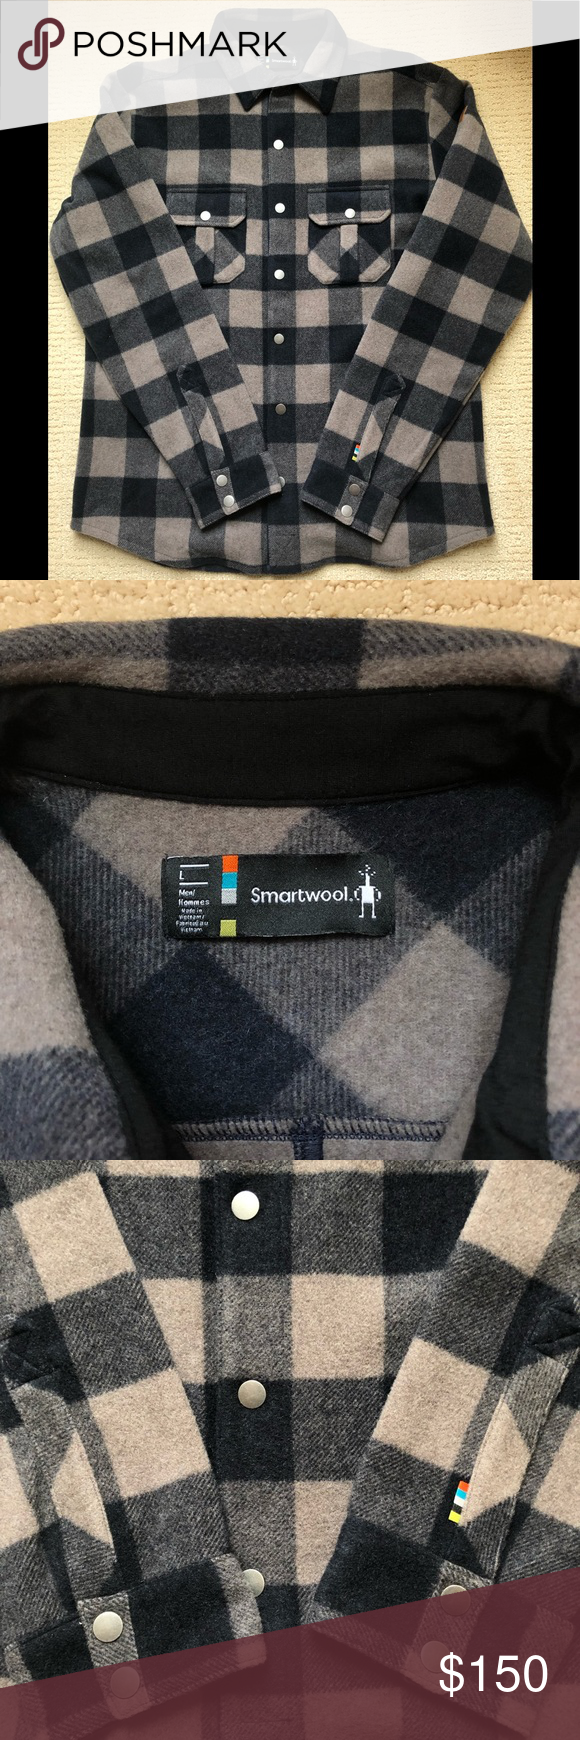 b0464f7772c3 SmartWool Anchor Line Shirt Jacket. Snap closures. Two chest pockets. 80%  Merino Wool, 20% Nylon. Relaxed Fit. Size Large. Loren color. Smartwool  Jackets ...